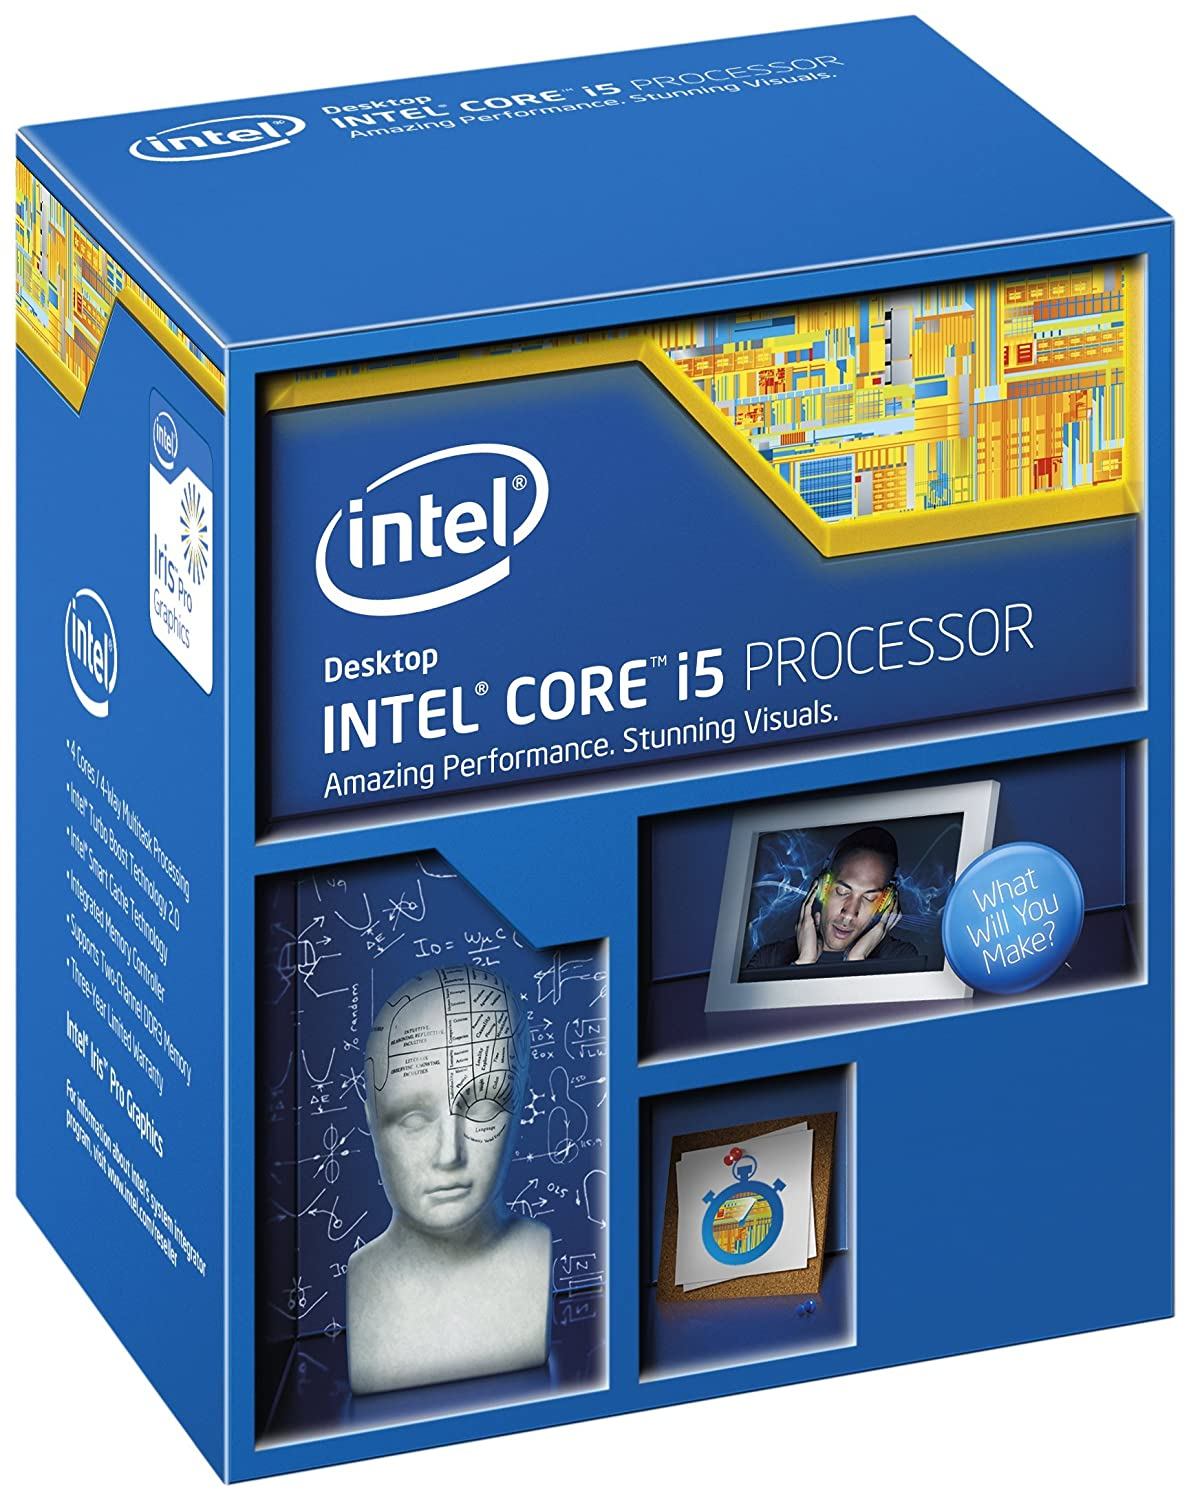 Intel Core i5-5675C - Procesador (LGA FCLGA1150, Quad-Core de 3.1 GHz, Intel Iris Pro Graphics 6200, PCI Express 3.0)